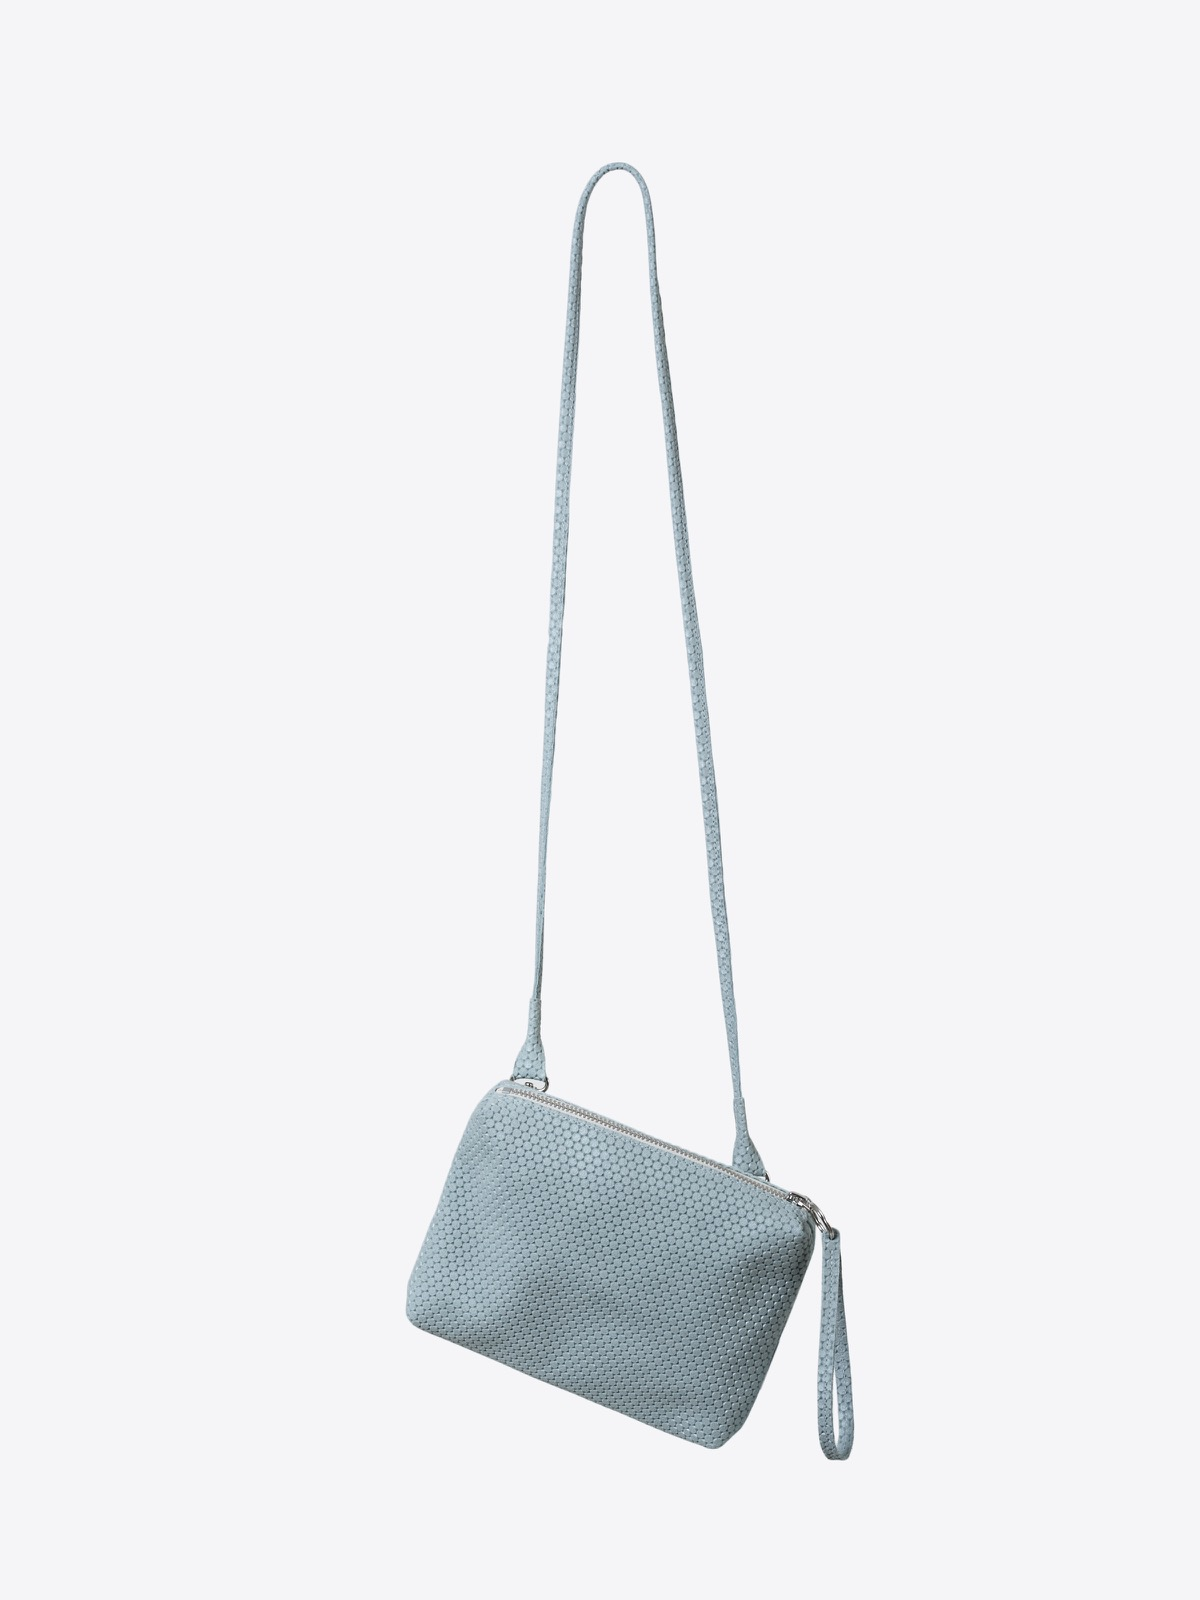 A2 mint grey structured leather